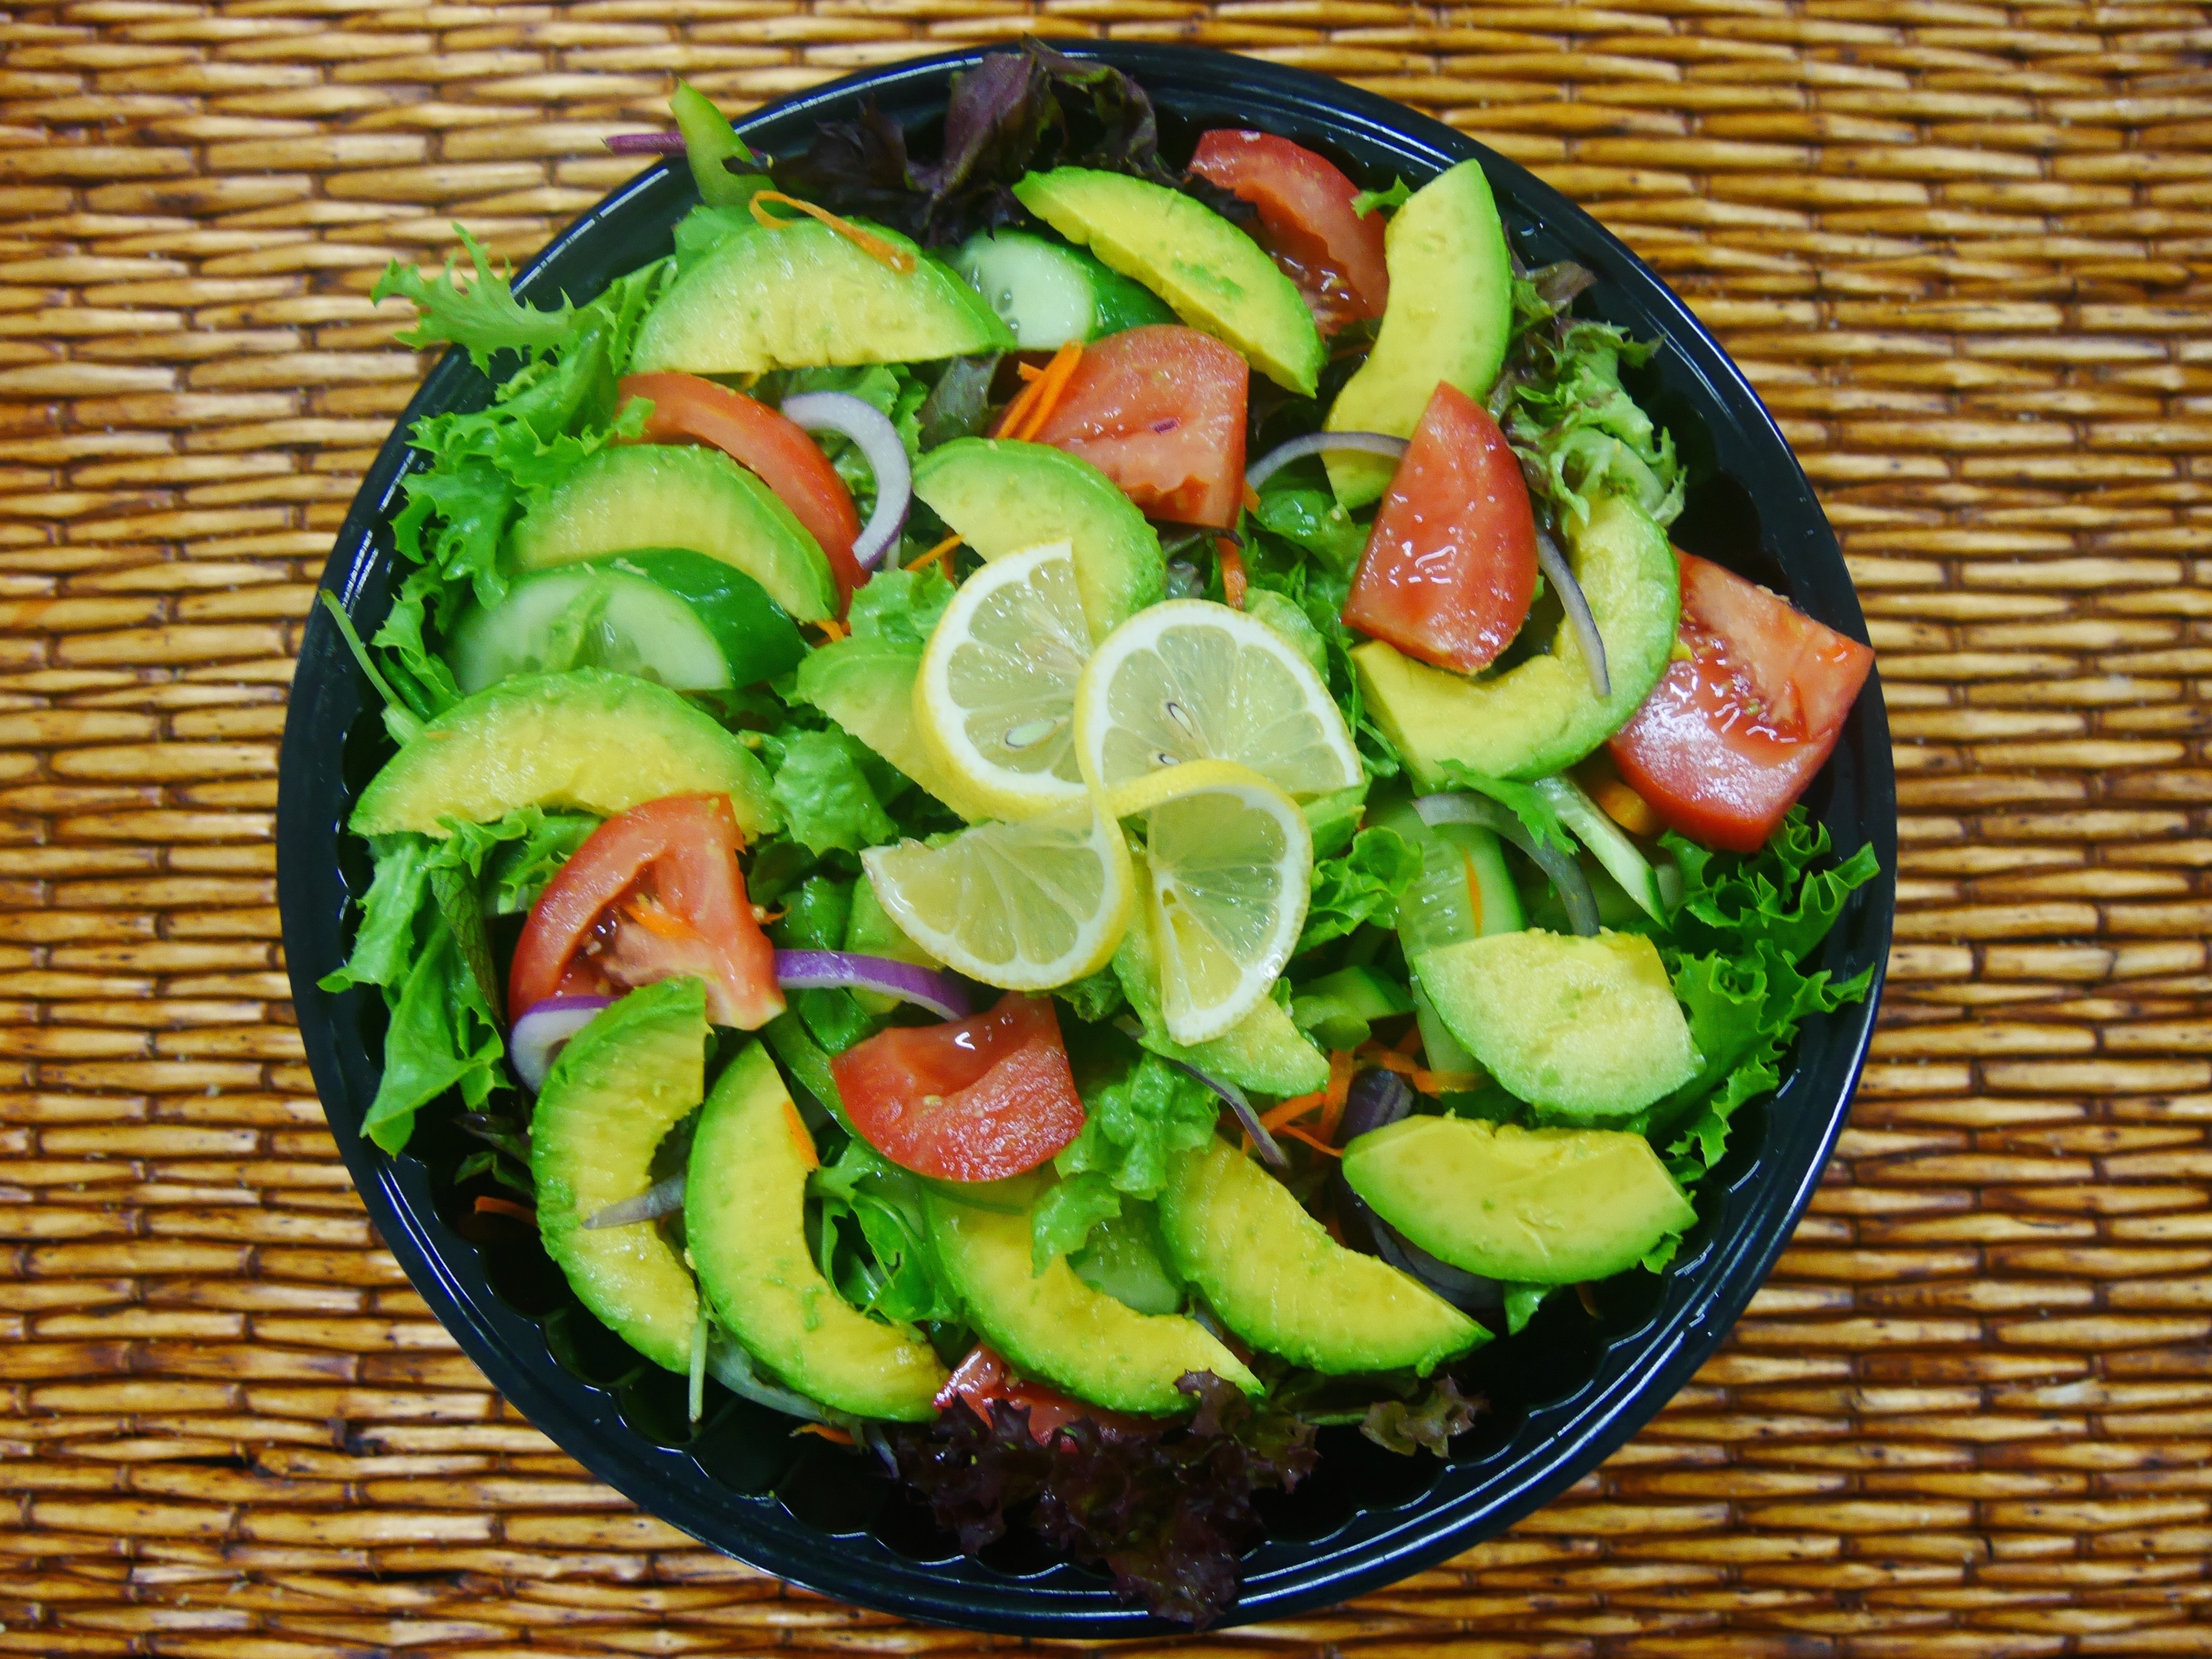 salad garden w avocado